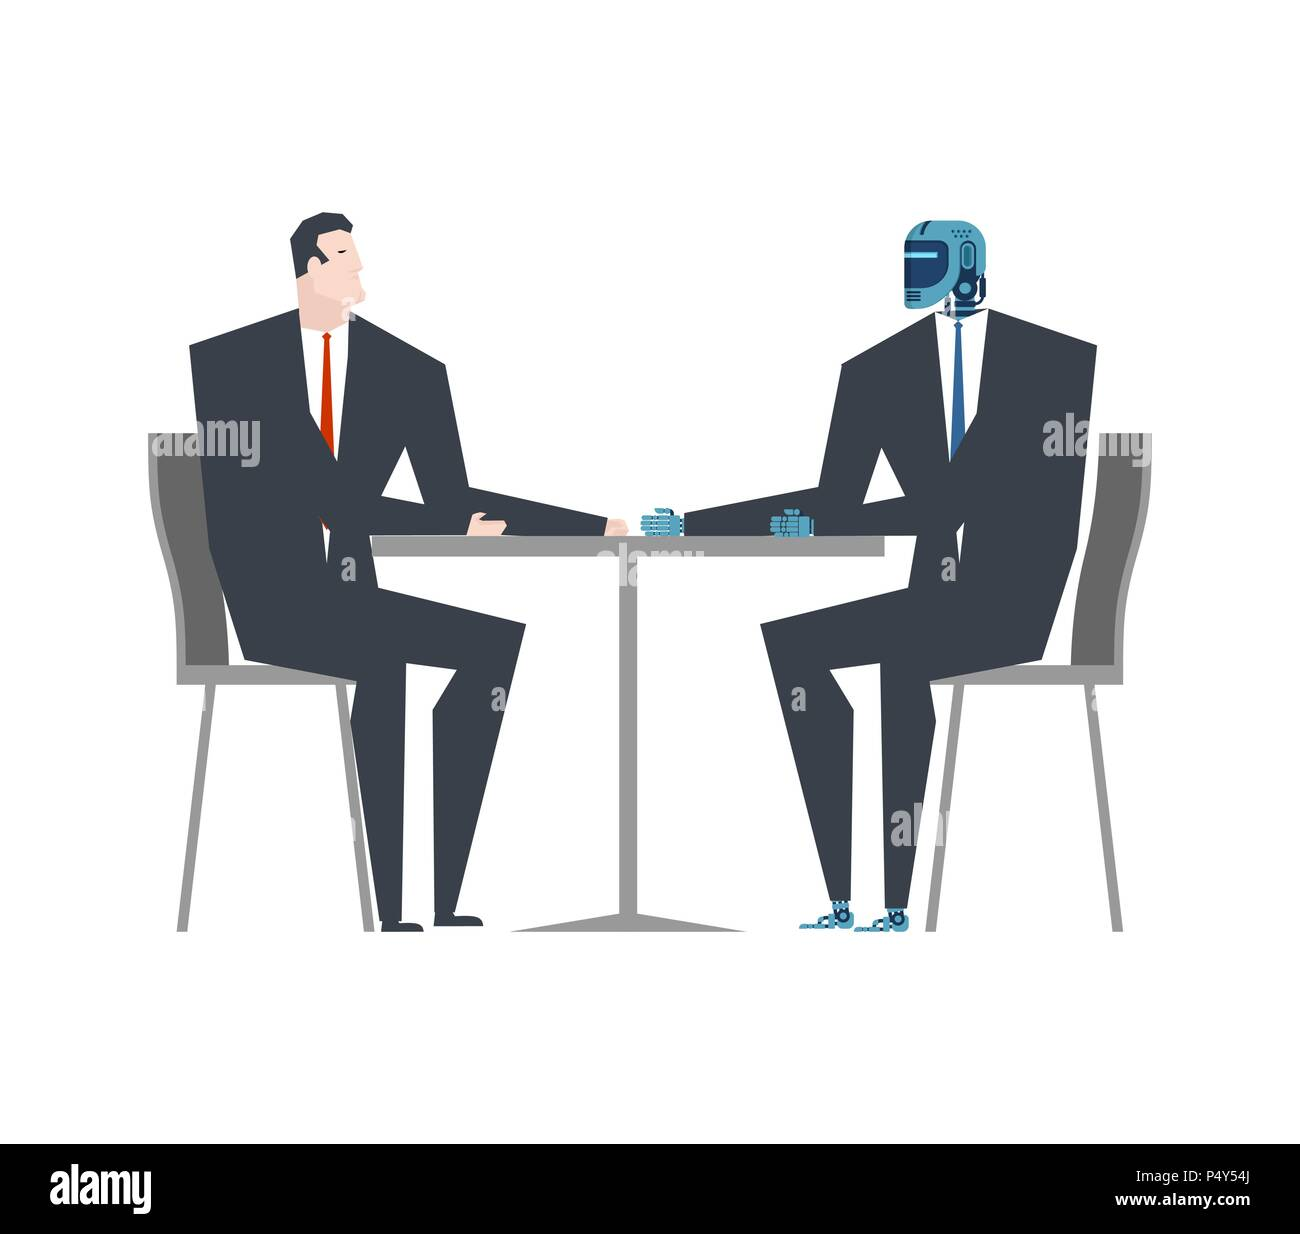 Cyborg and businessman talks. Robot and man at table. Artificial Intelligence. Vector illustration Stock Vector